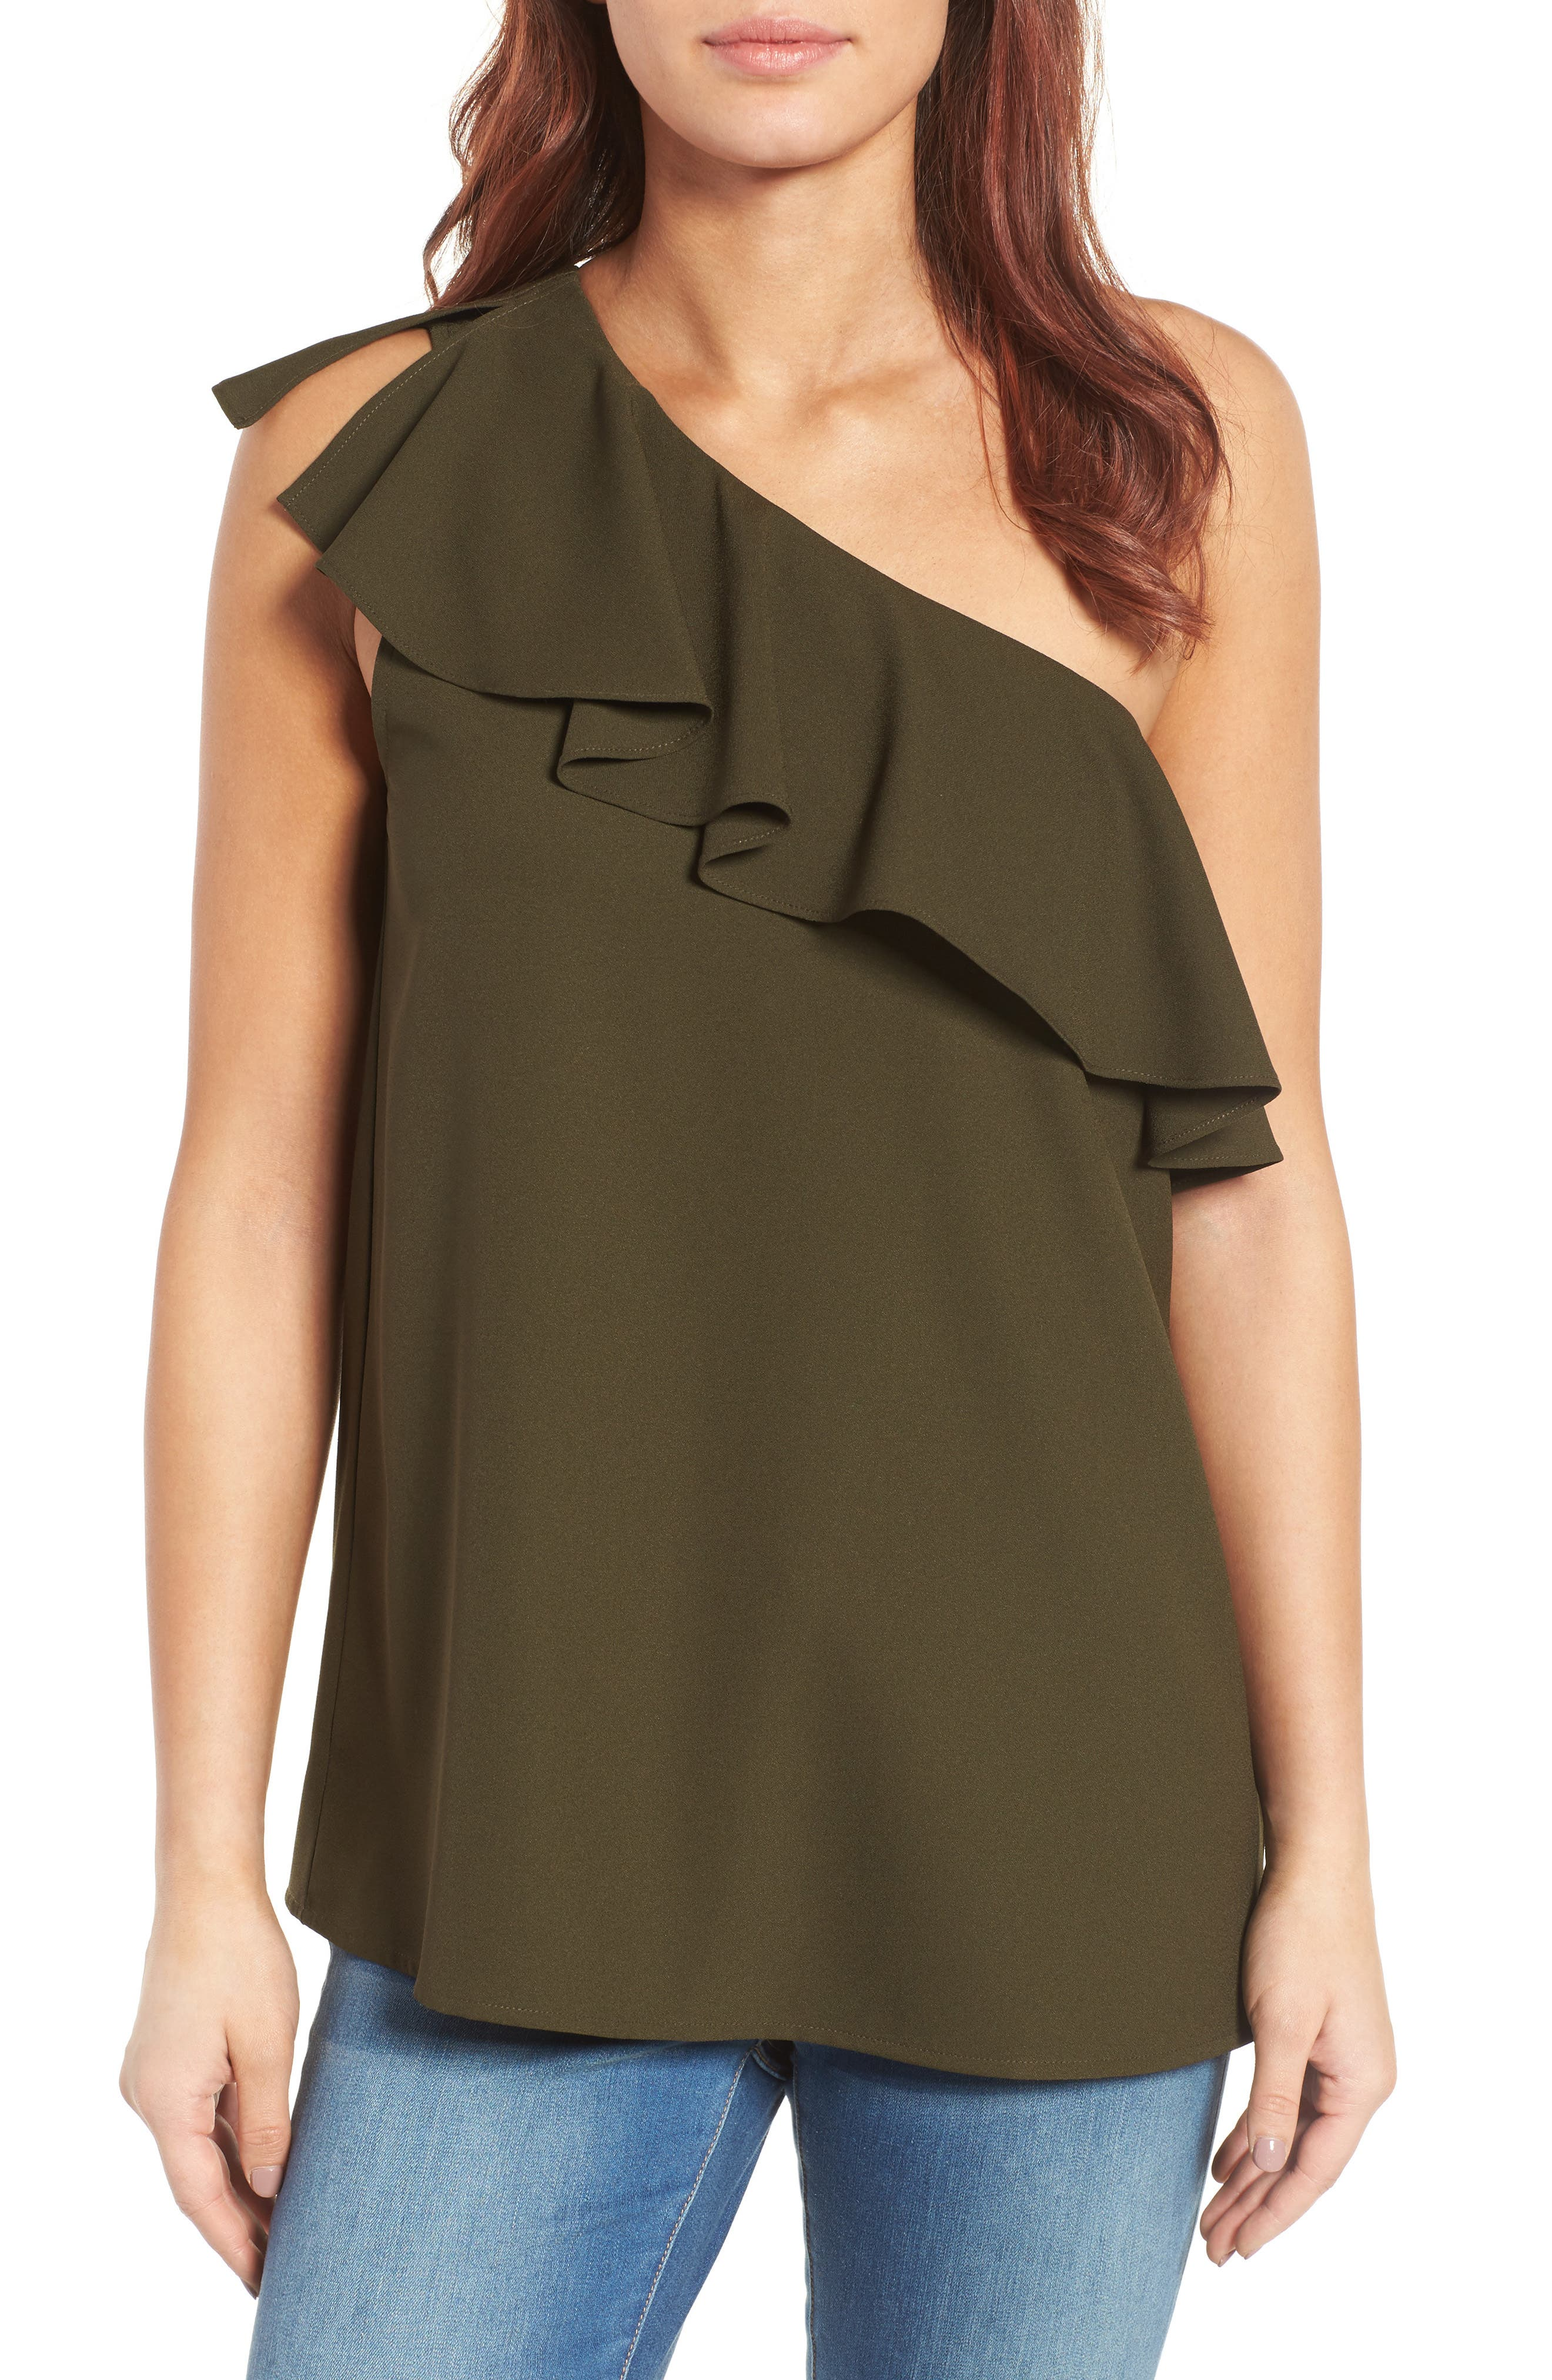 Alternate Image 1 Selected - Pleione Ruffled One Shoulder Top (Regular & Petite)